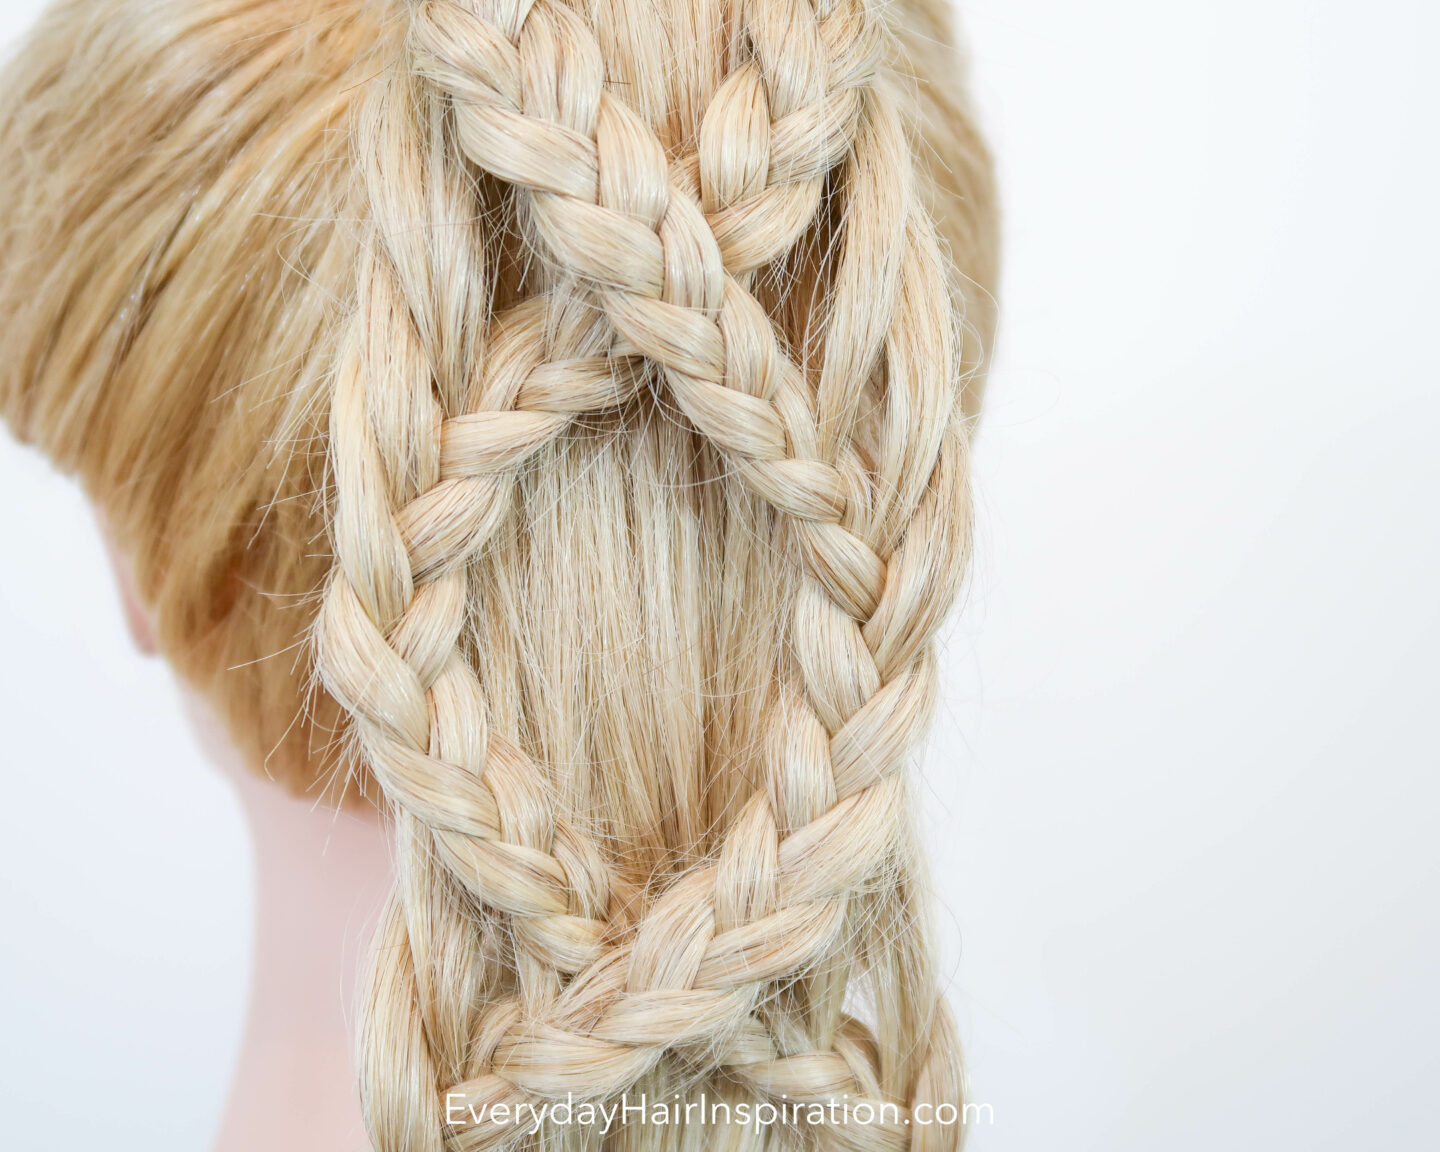 Blonde hair dresser doll seen dorm the back, close up, with a criss-cross braided ponytail.